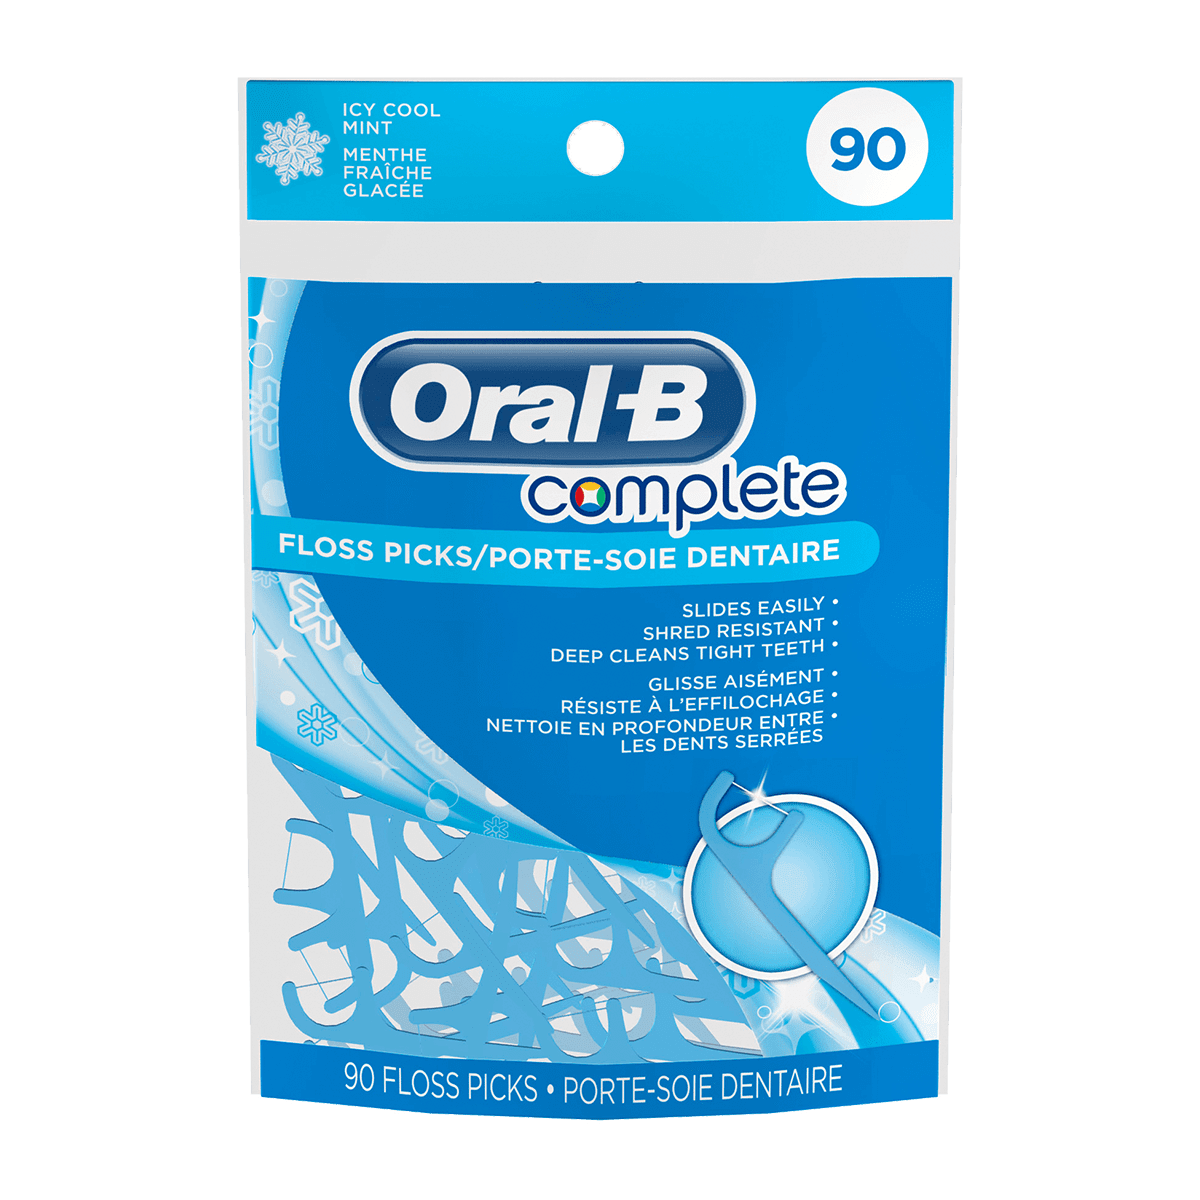 Oral-B Complete Icy Cool Mint Floss Picks